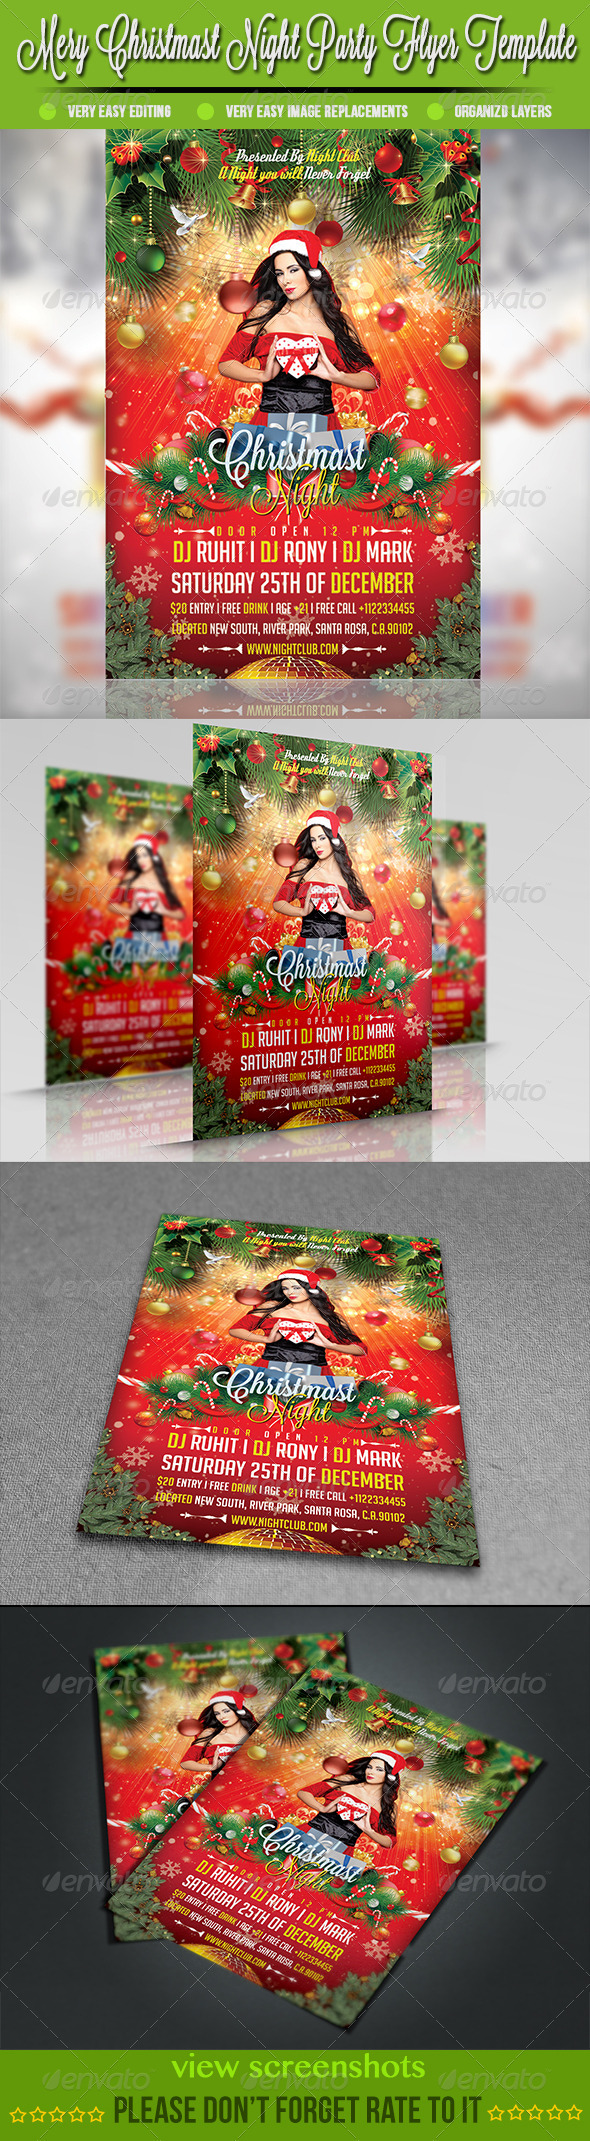 GraphicRiver Merry Christmast Night Party Flyer Template 3473965